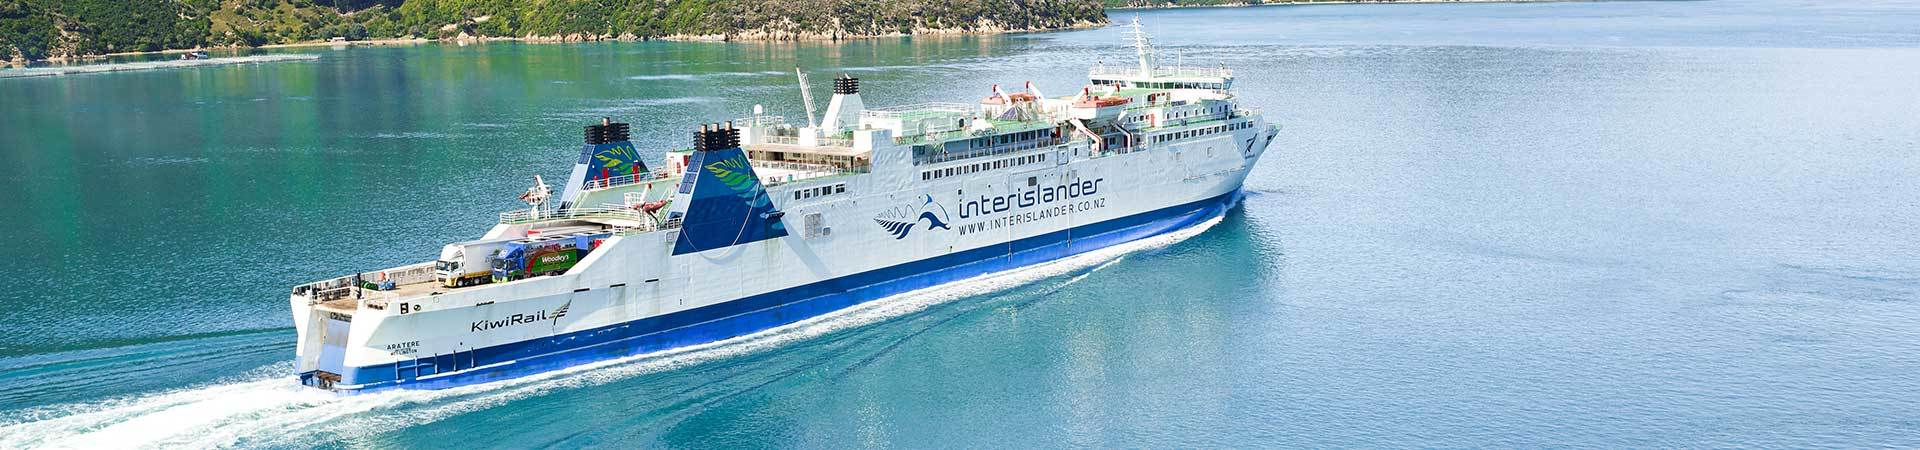 Interisland Ferry New Zealand